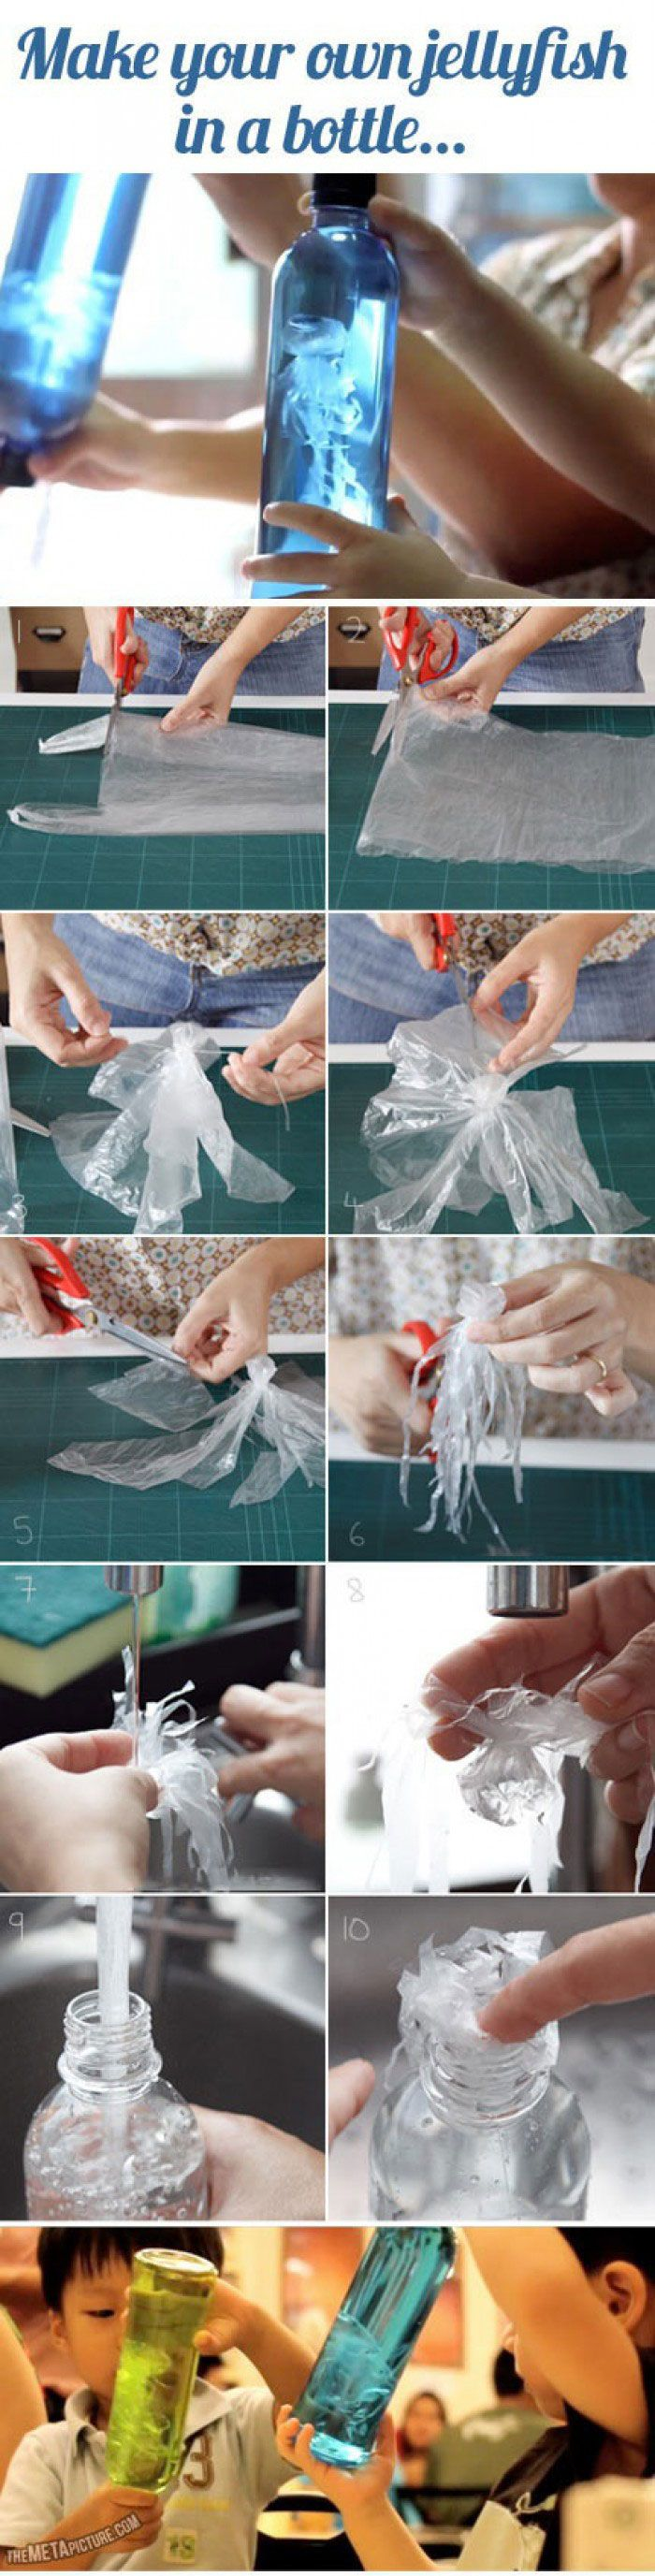 Put your old plastic bags to use with this amazing jellyfish craft for kids.    Here's a video of kids enjoying their homemade plastic jellyfish.    [wp_ad_camp_2]